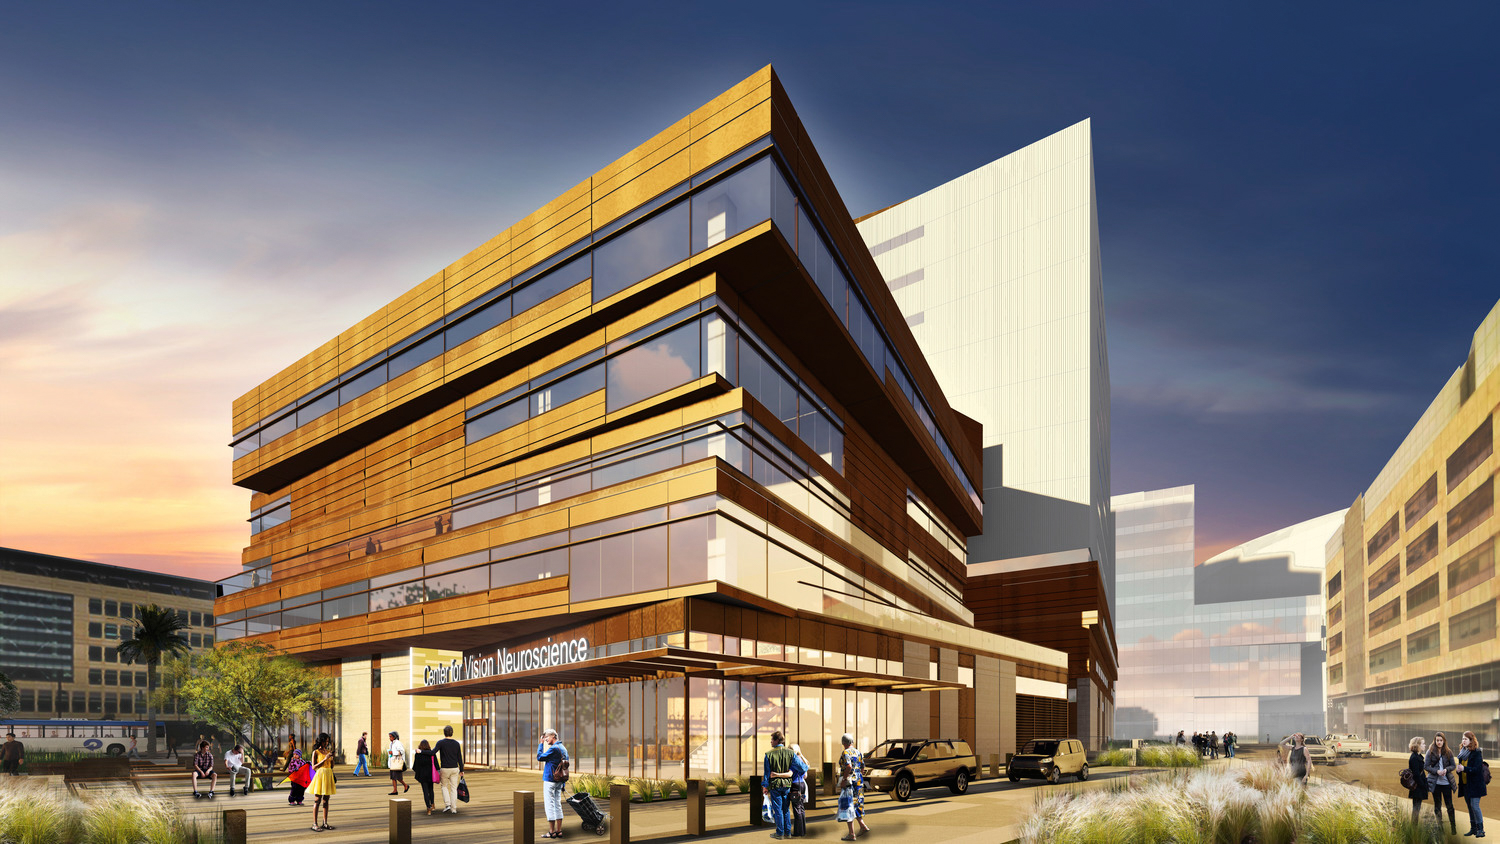 Wayne and Gladys Valley Center for Vision at 490 Illinois Street, image courtesy Webcor